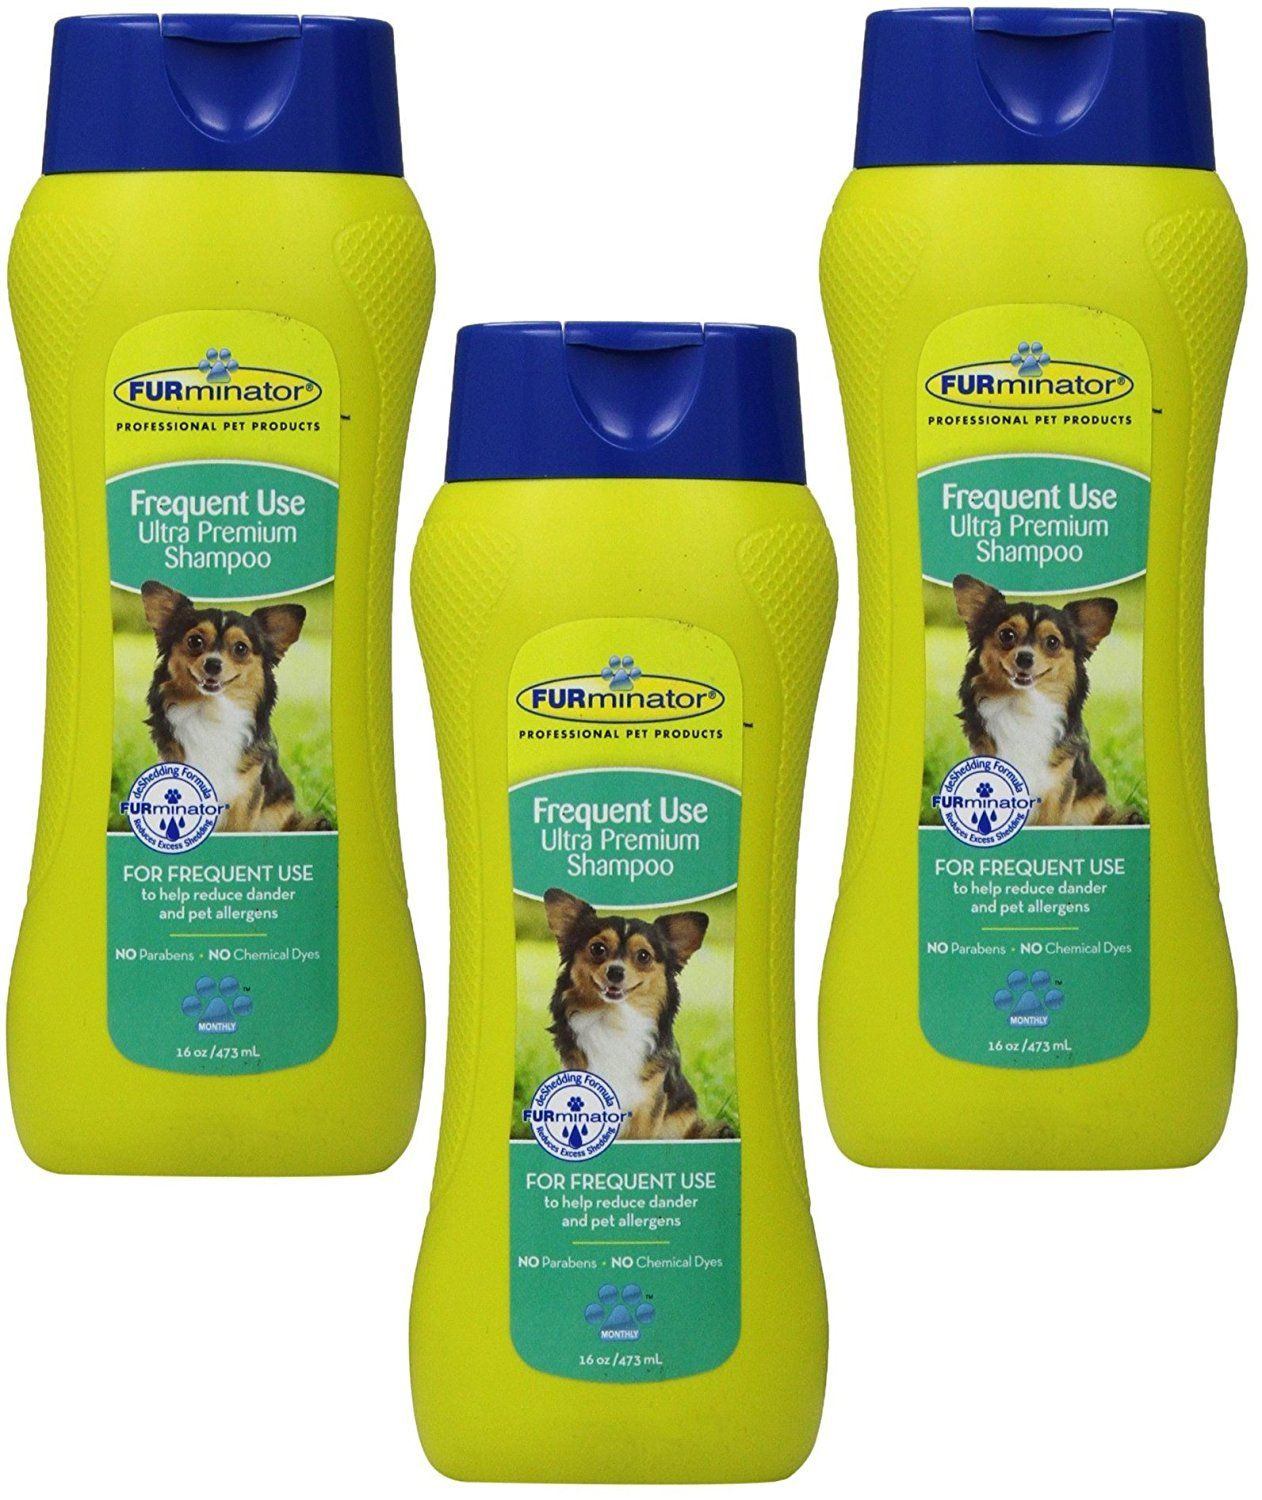 Furminator Frequent Use Ultra Premium Shampoo 16 Ounce 3 Pack More Infor At The Link Of Image Dog Supplies For Cat Shampoo Cat Grooming Dog Grooming